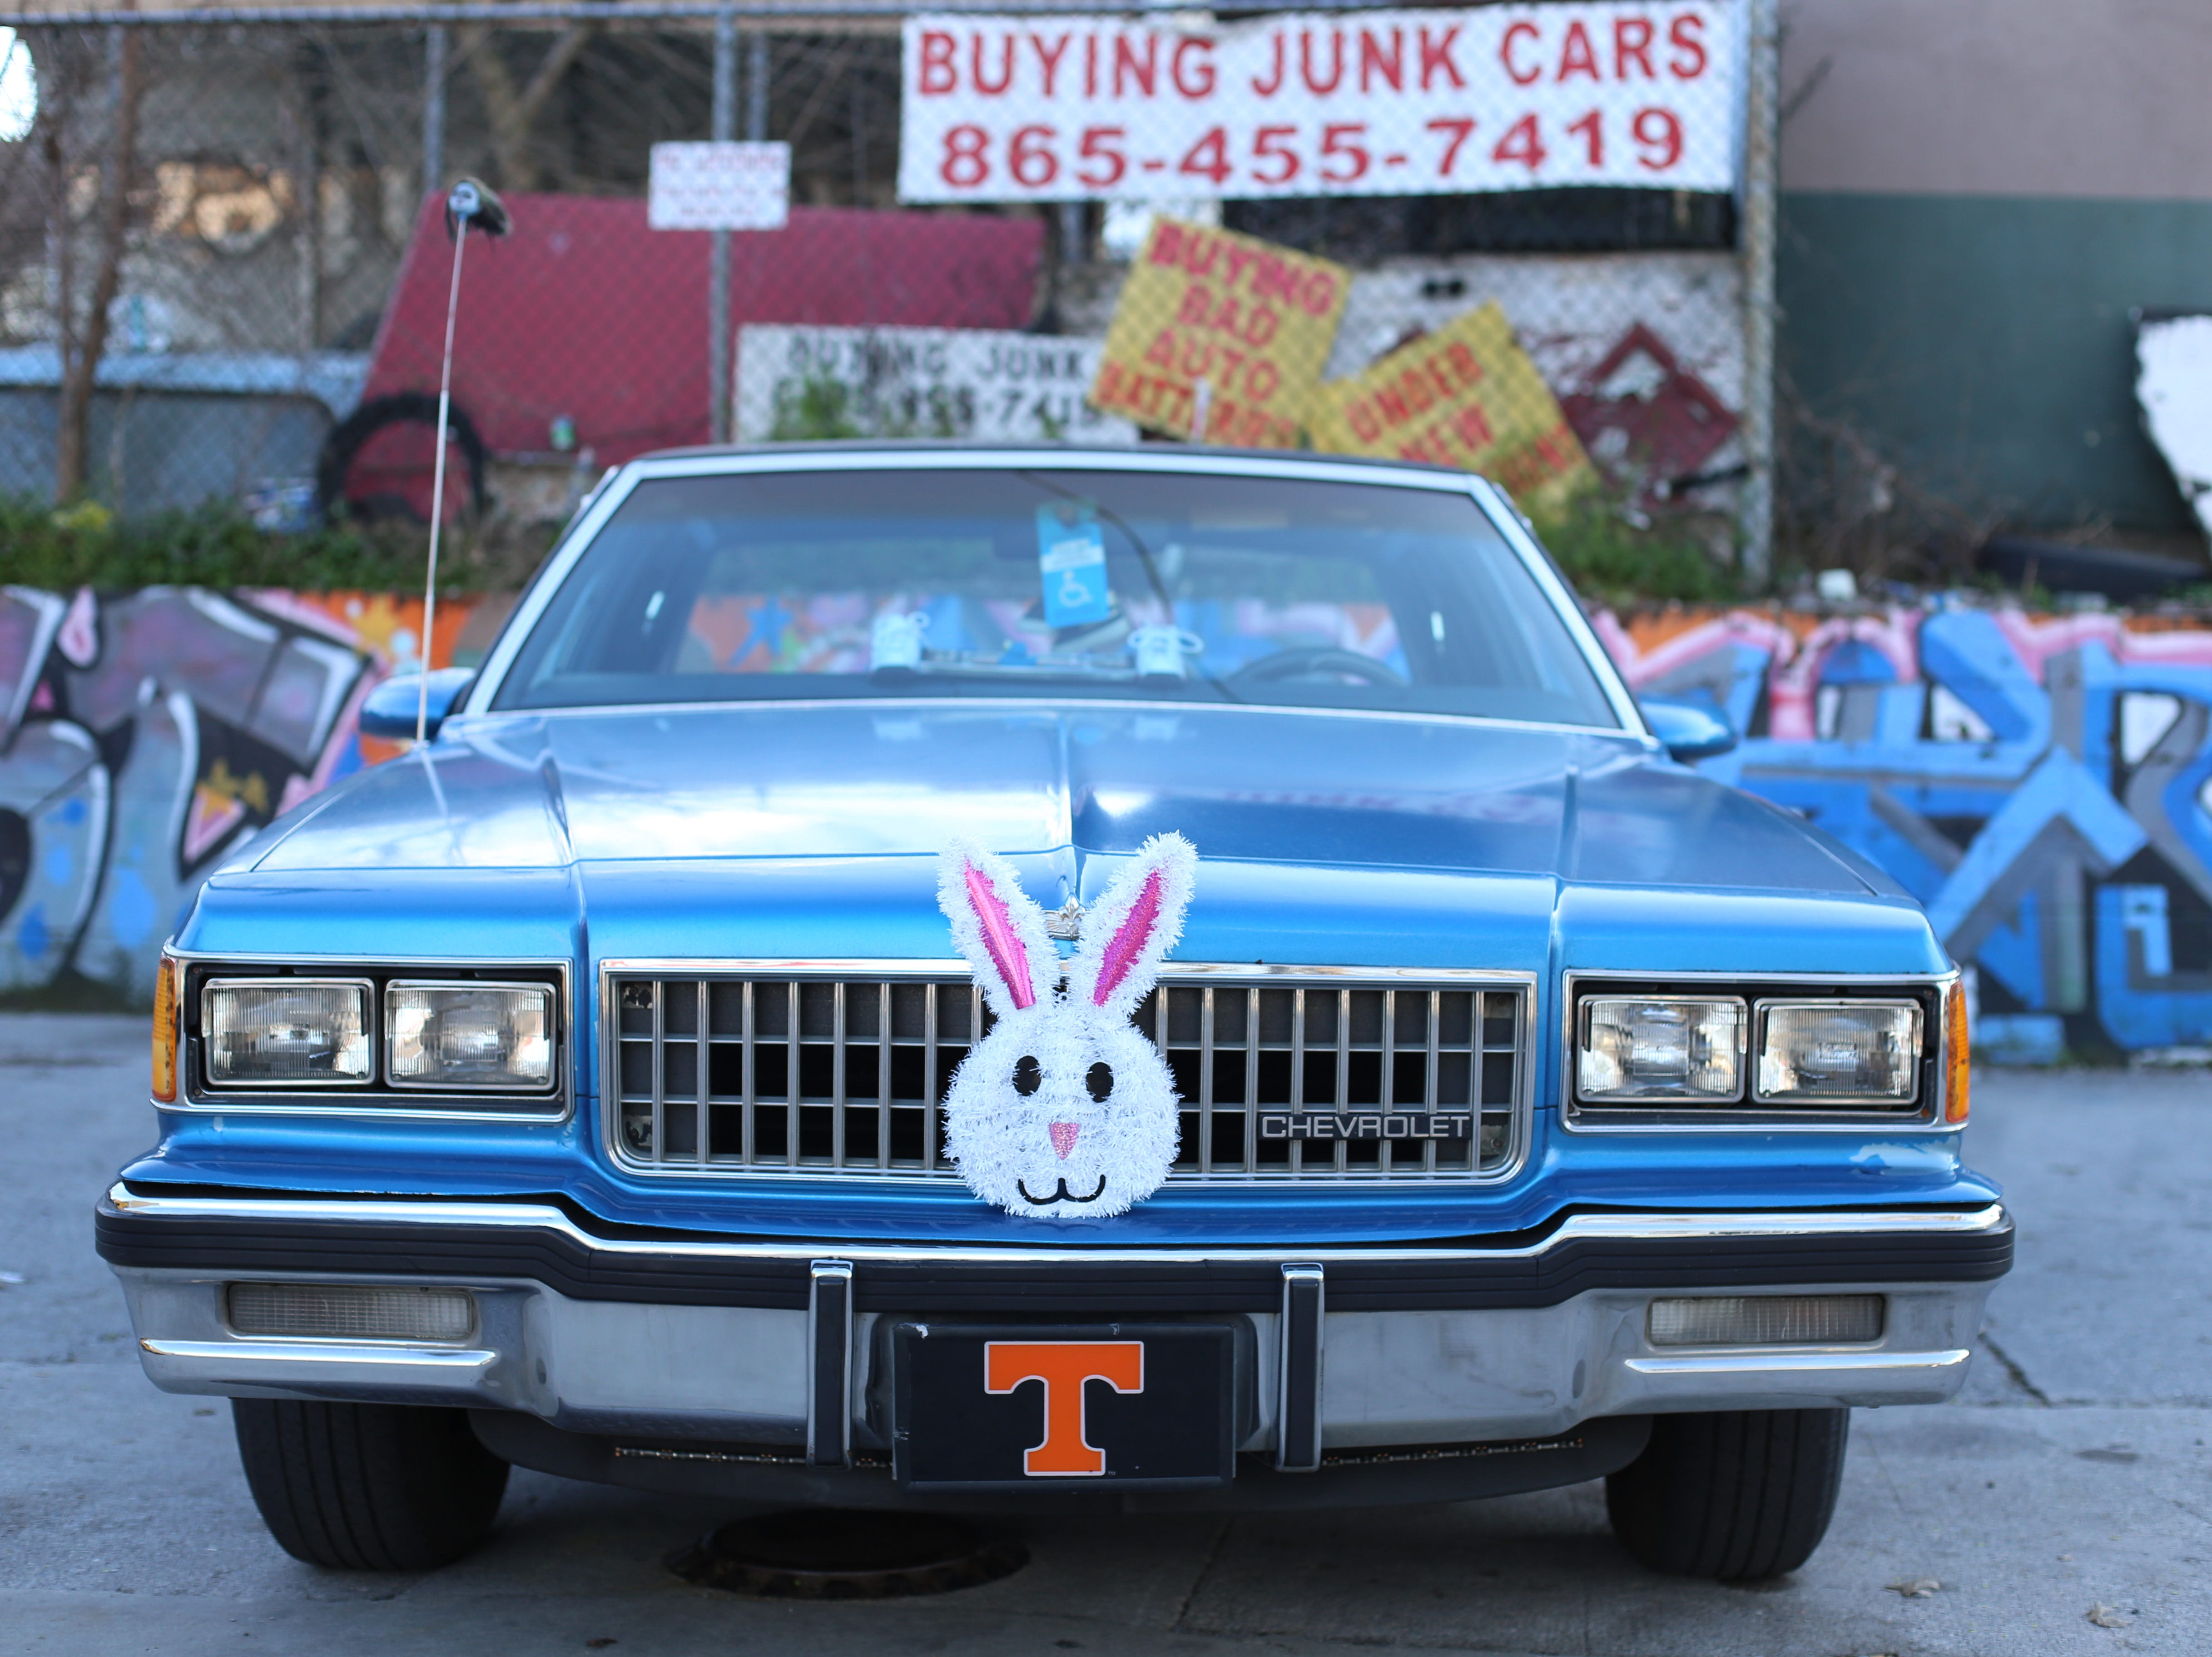 Holly Rainey captured this photo of a vintage Chevrolet with her Canon 6D camera. The car's owner, Marshall, decorates his Caprice with decorations for every holiday, like this bunny Easter.